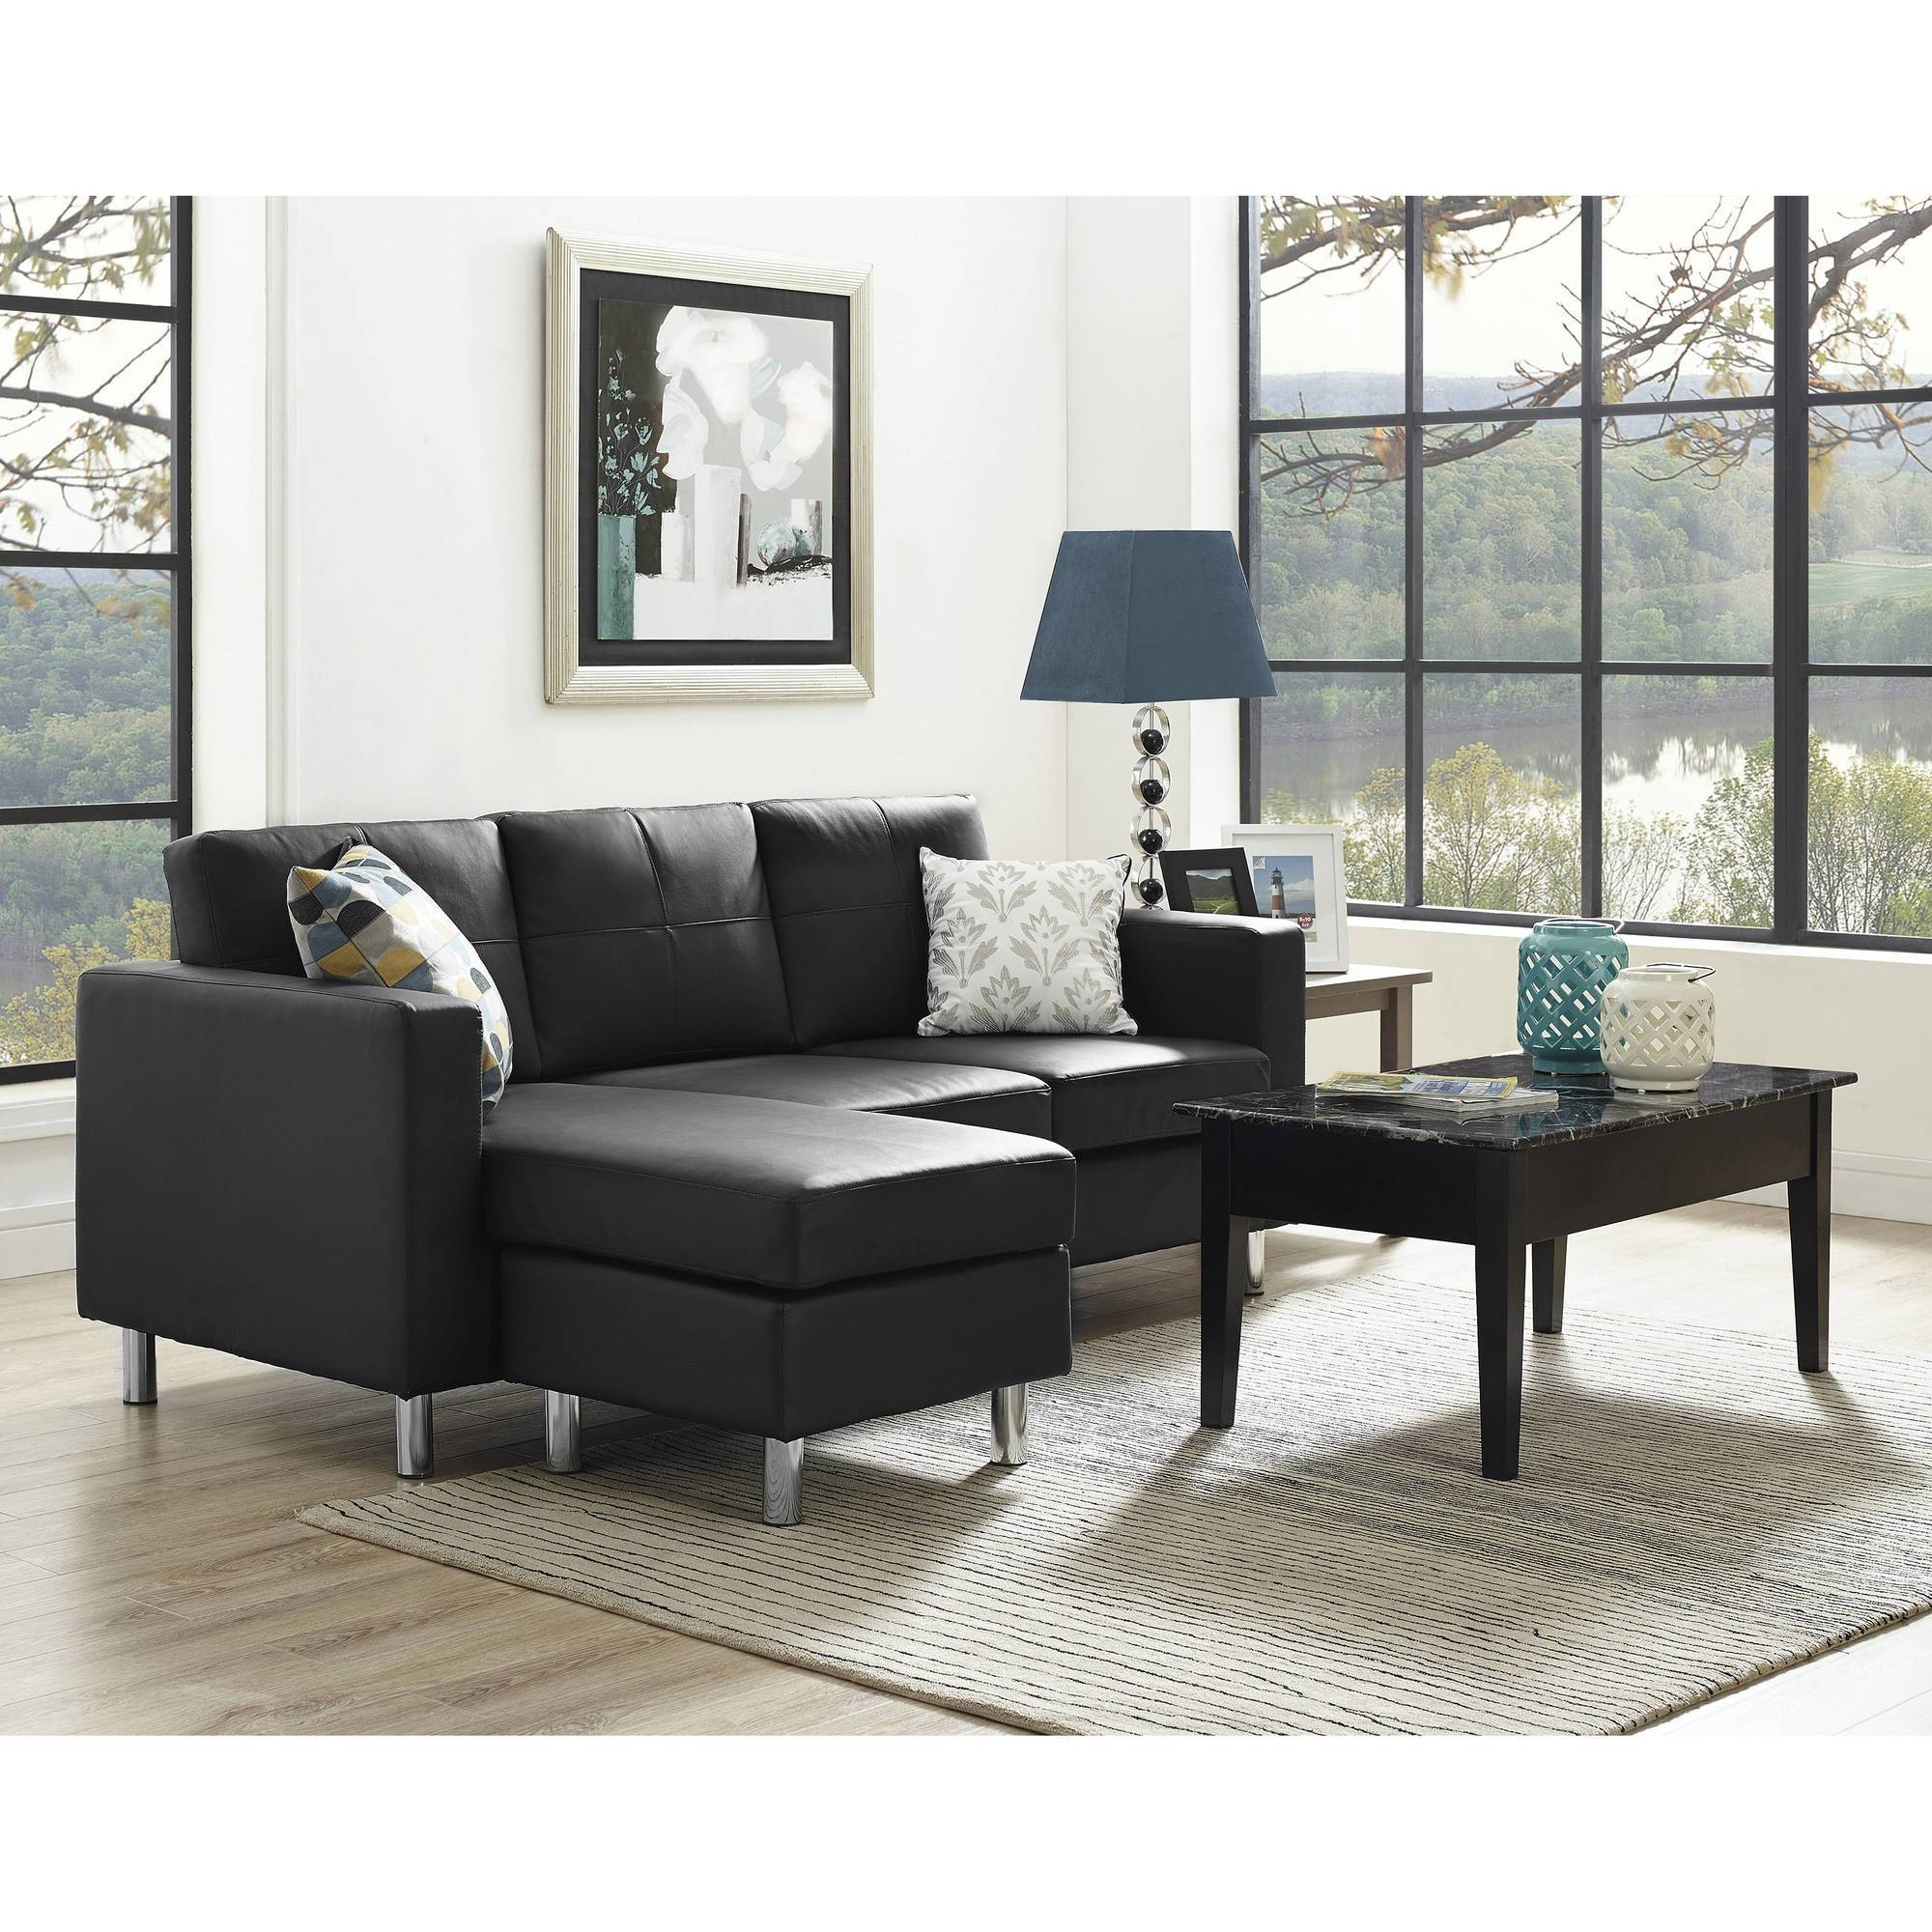 Dorel Living Small Spaces Configurable Sectional Sofa, Multiple pertaining to Colorful Sectional Sofas (Image 11 of 30)